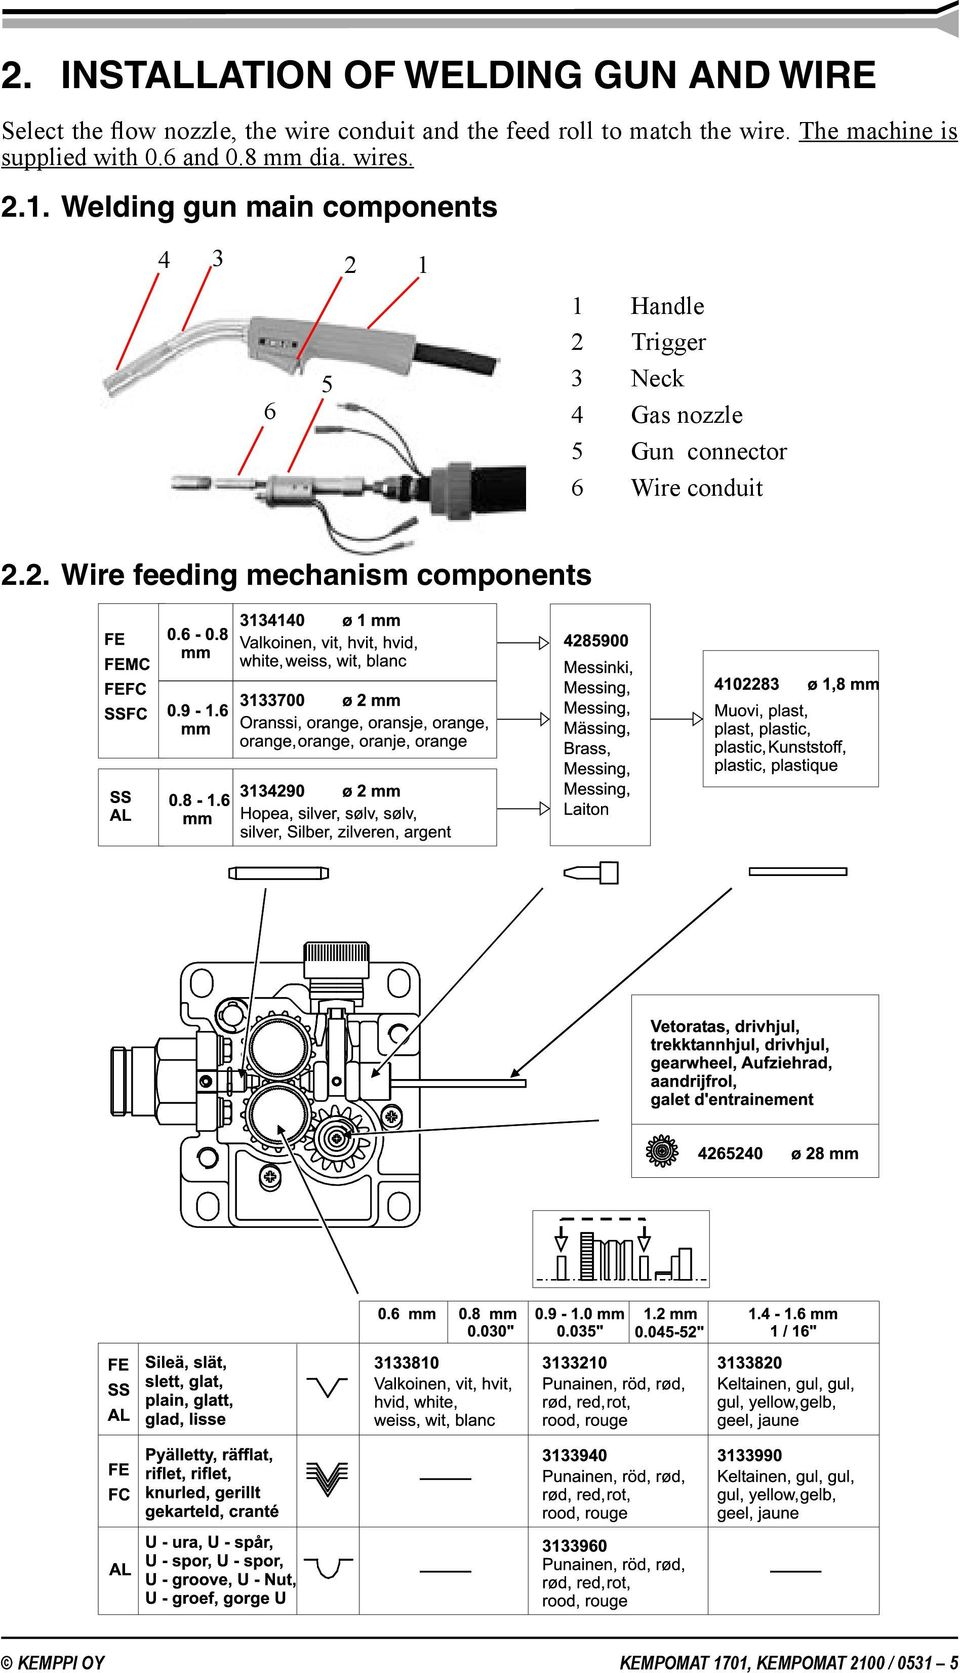 Kempomat 1701 Operation Instructions English Gebrauchsanweisung 4 Best Images Of 220 Welder Wiring Diagram 3 Wire 240 Volt Range Welding Gun Main Components 1 2 6 5 Handle Trigger Neck